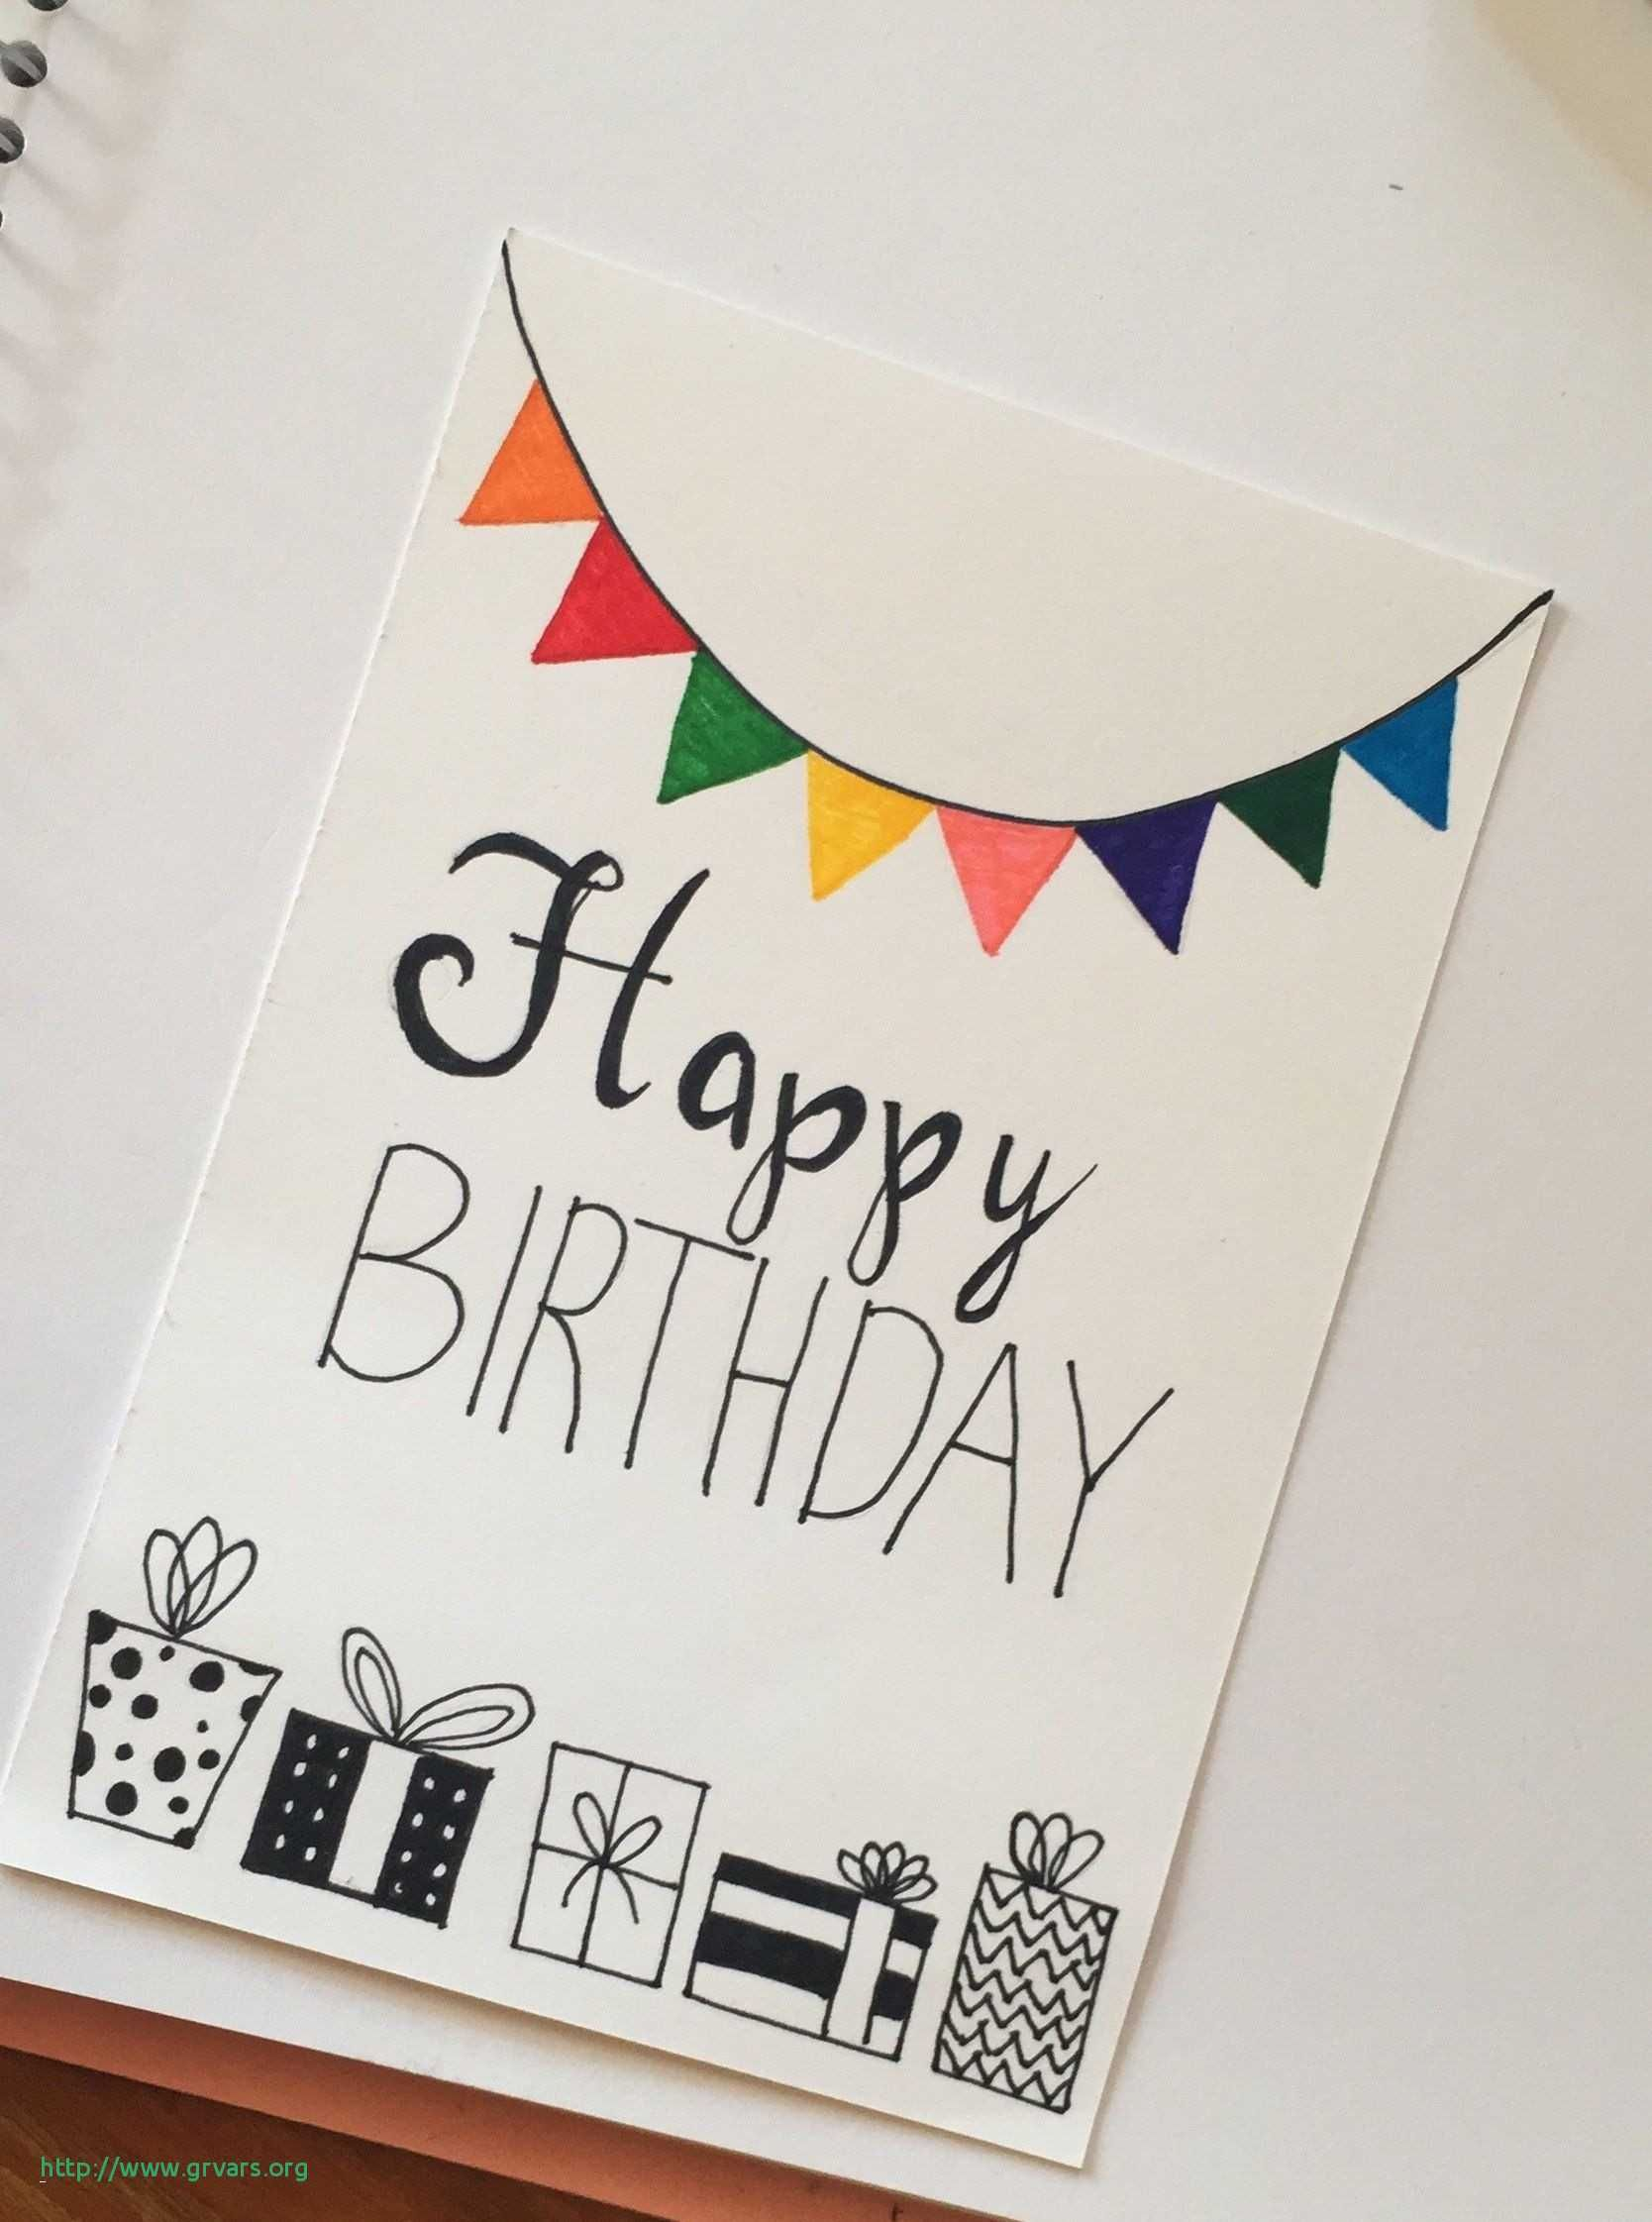 Awesome Image Of Funny Ideas For Birthday Cards In 2020 Birthday Card Drawing Birthday Card Craft Cool Birthday Cards